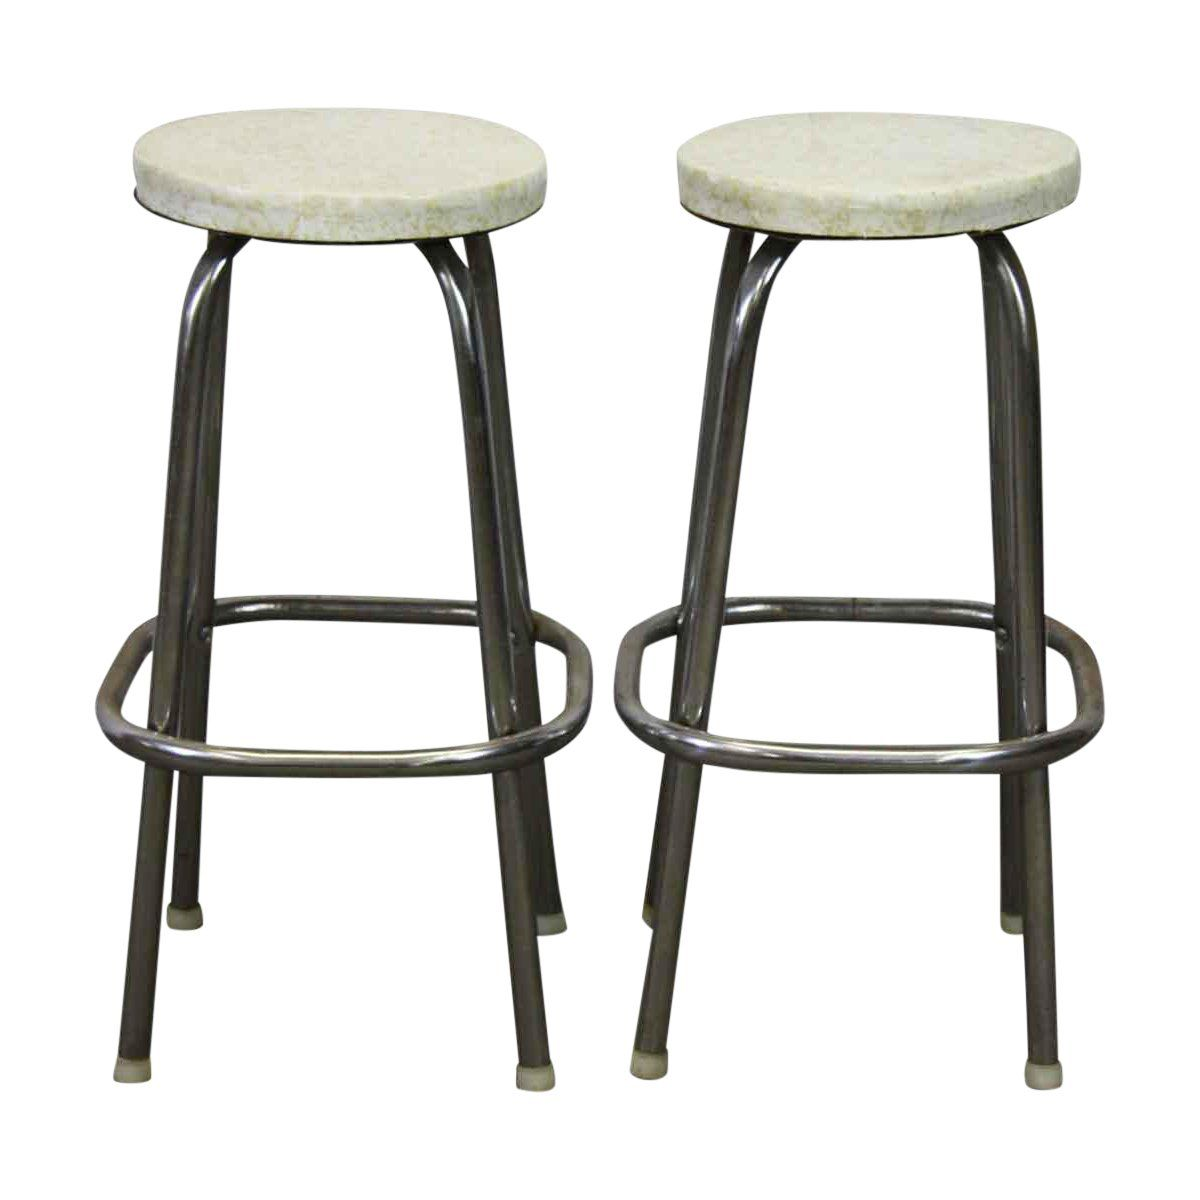 Awesome Round White Vinyl Metal Stools A Pair In 2019 Adams Cjindustries Chair Design For Home Cjindustriesco